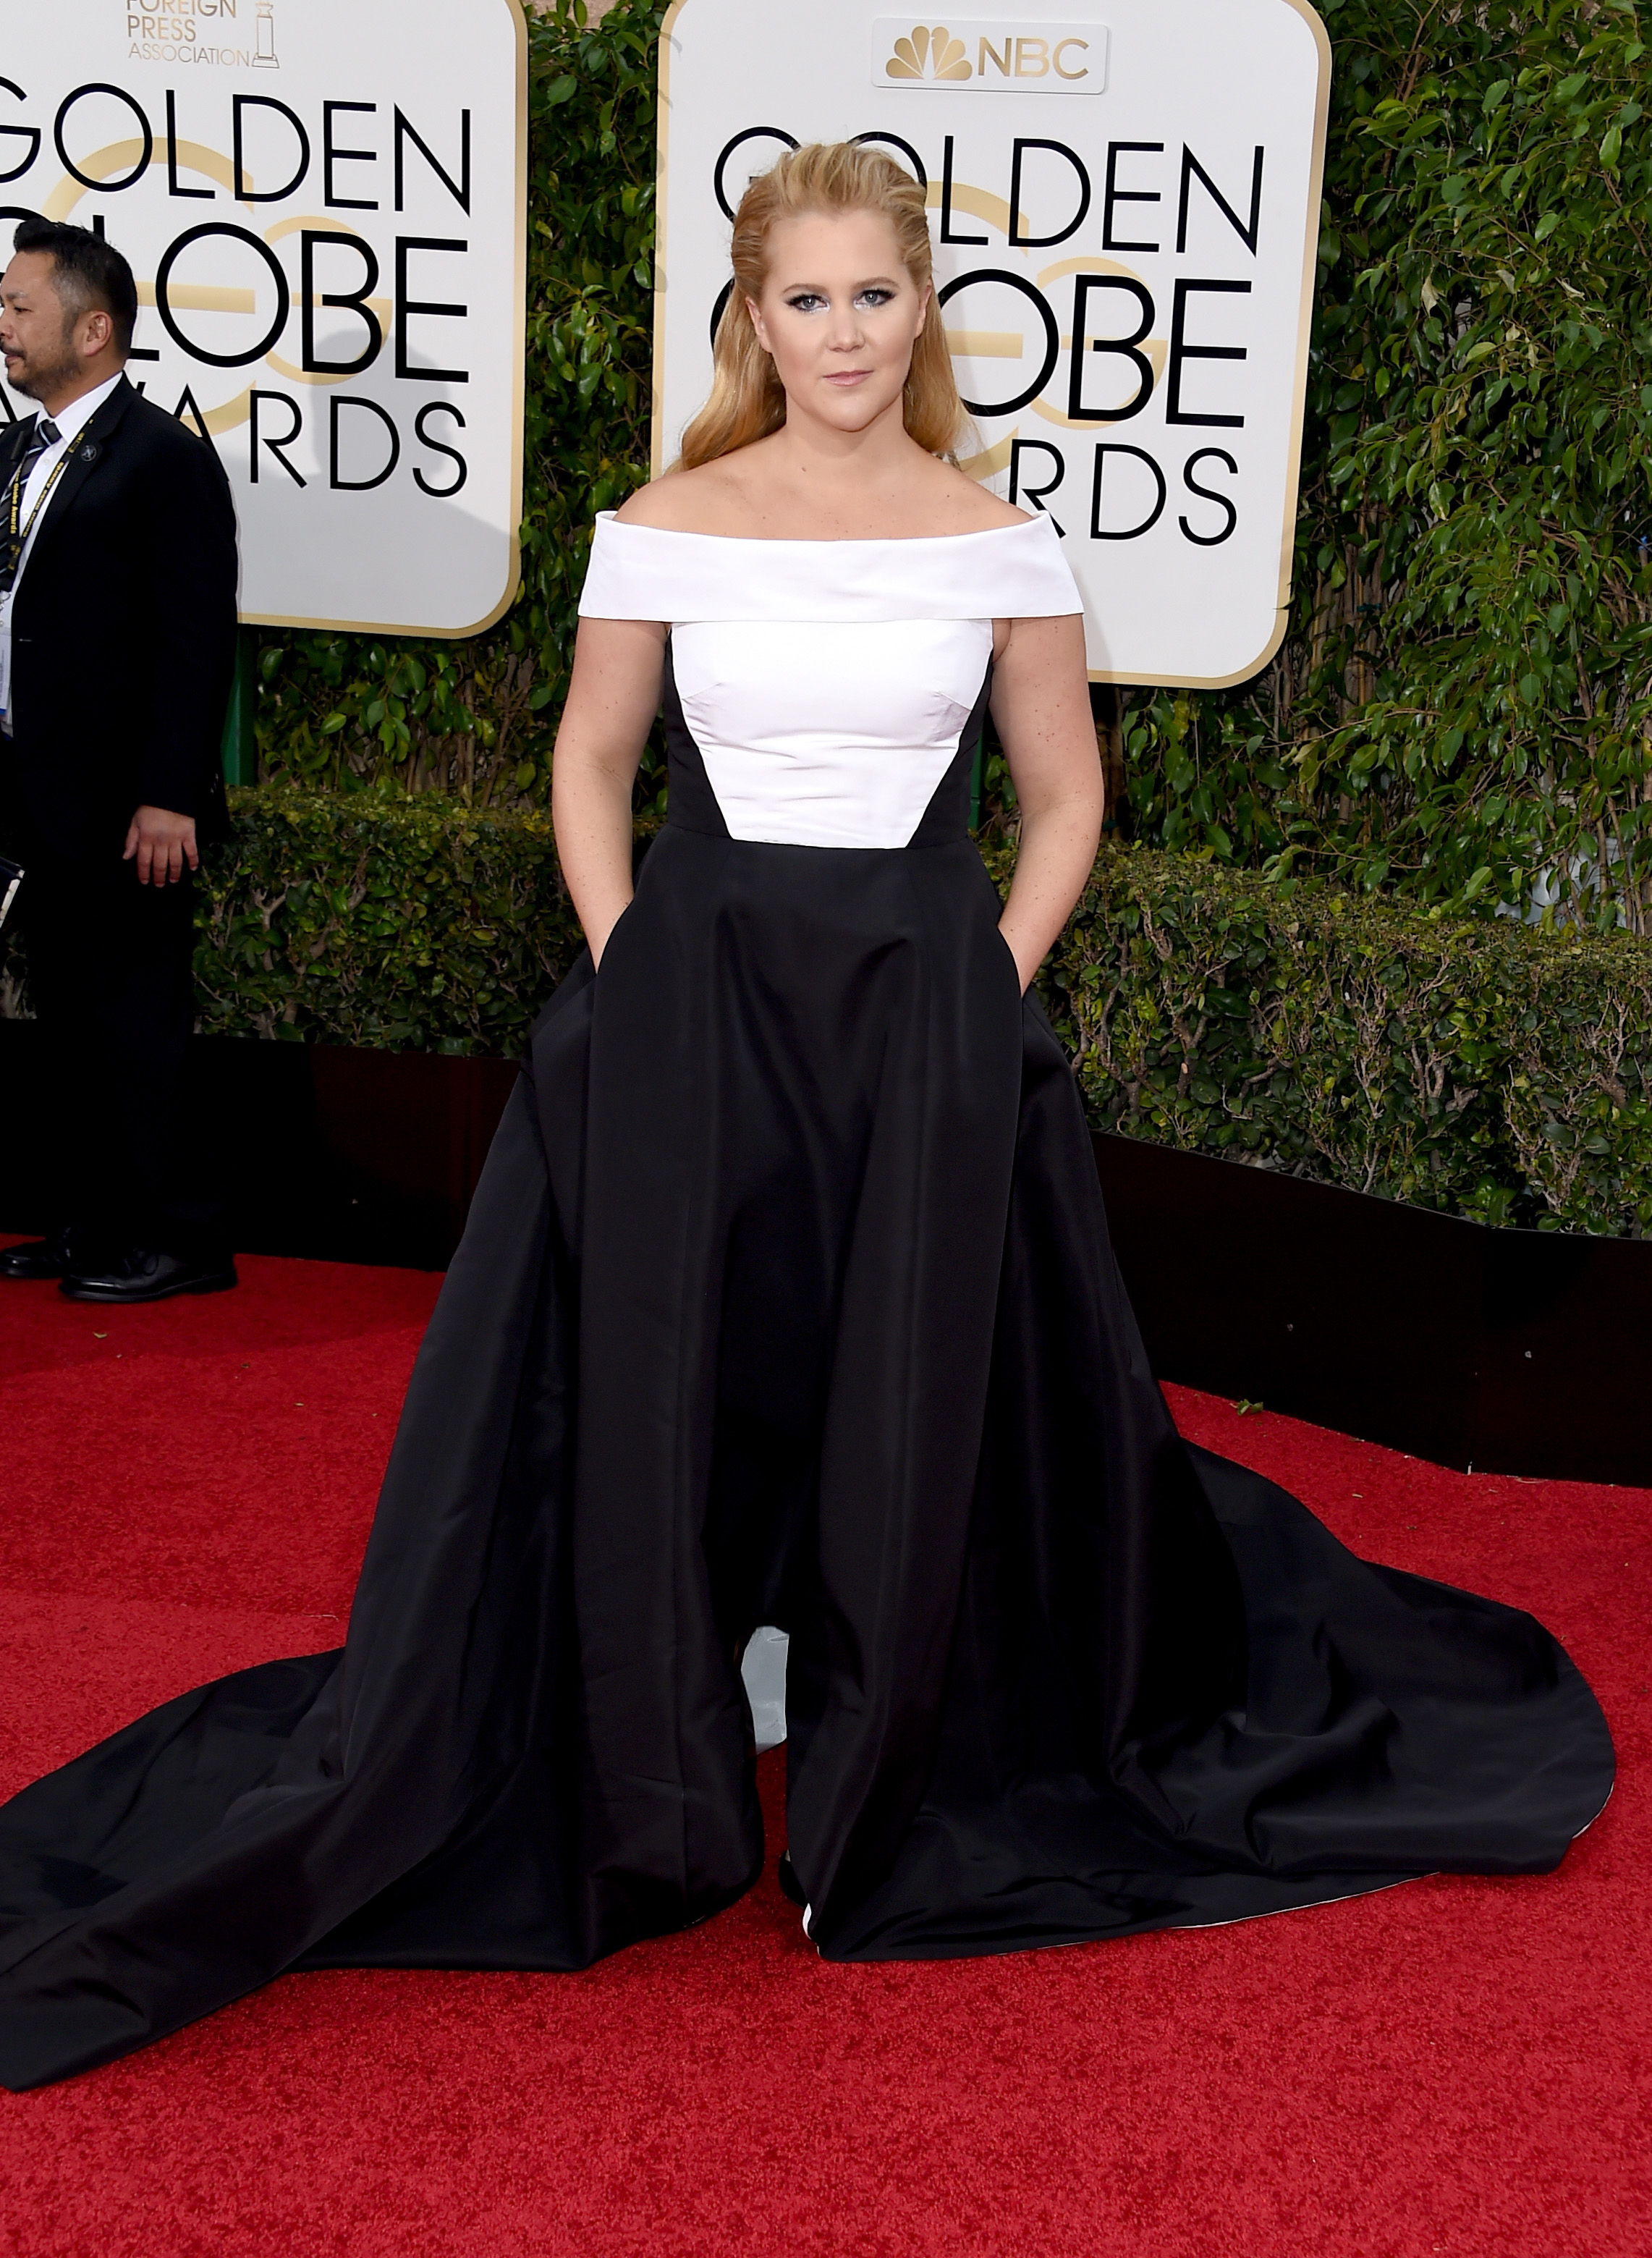 Amy Schumer arrives to the 73rd Annual Golden Globe Awards on Jan. 10, 2016 in Beverly Hills.